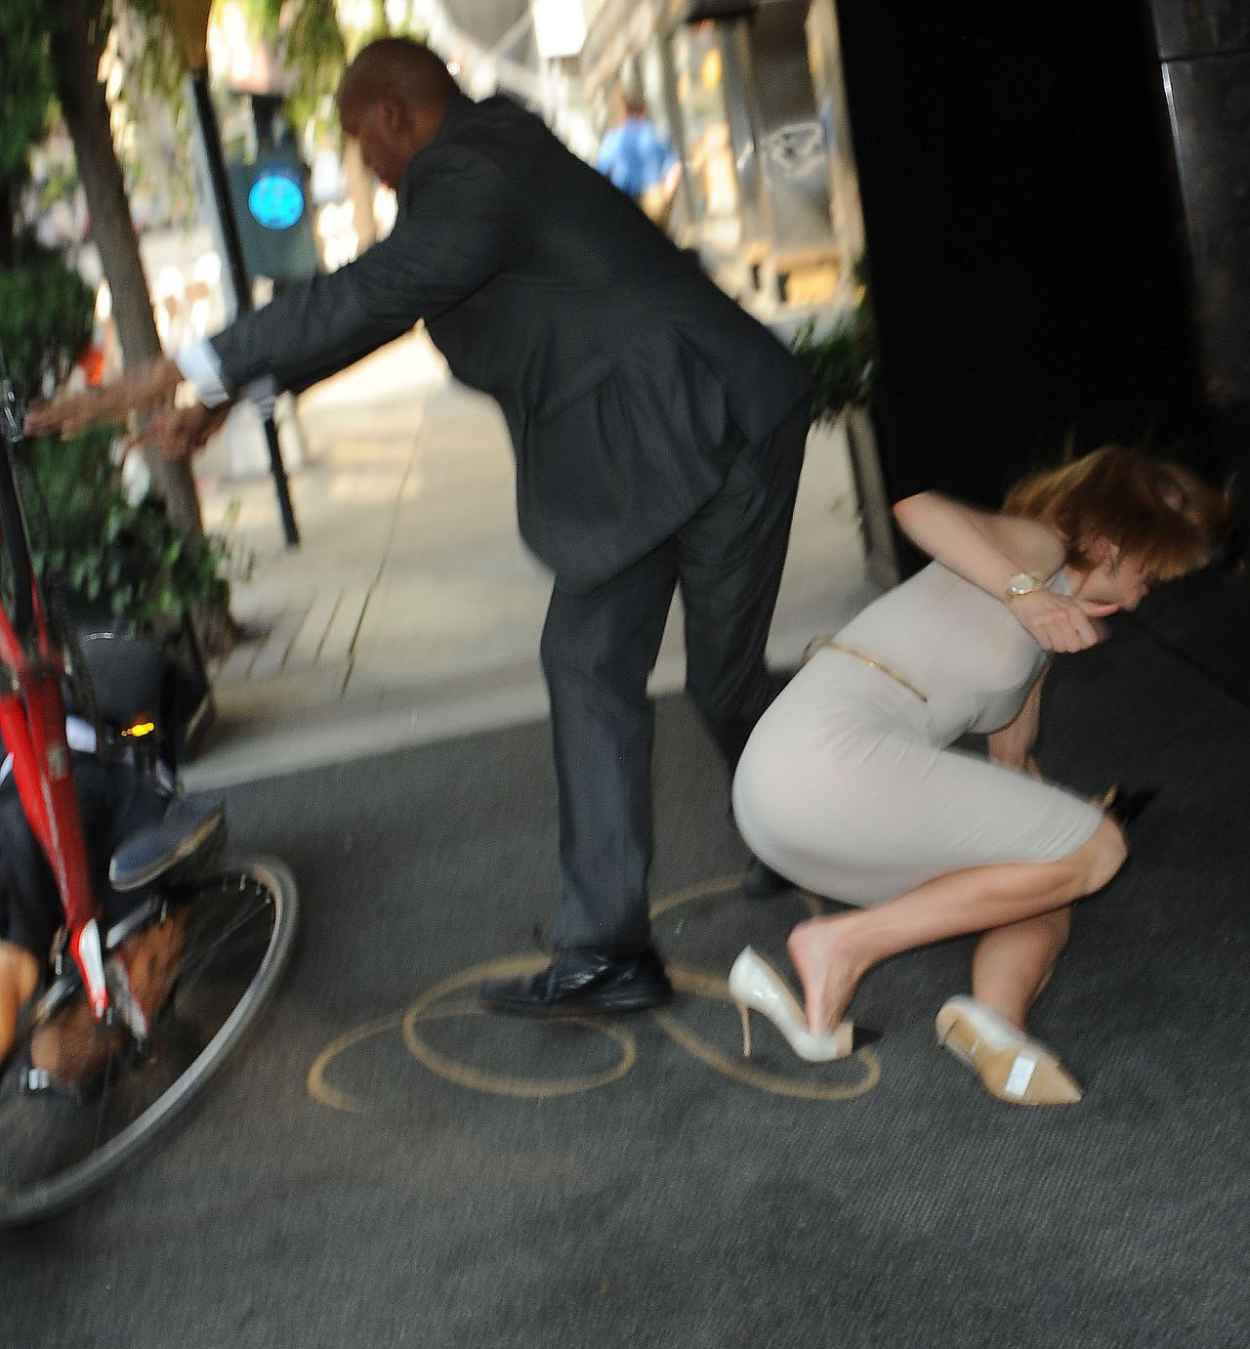 Nicole Kidman - Knocked down by Photographer on Bicycle - September 2015-1